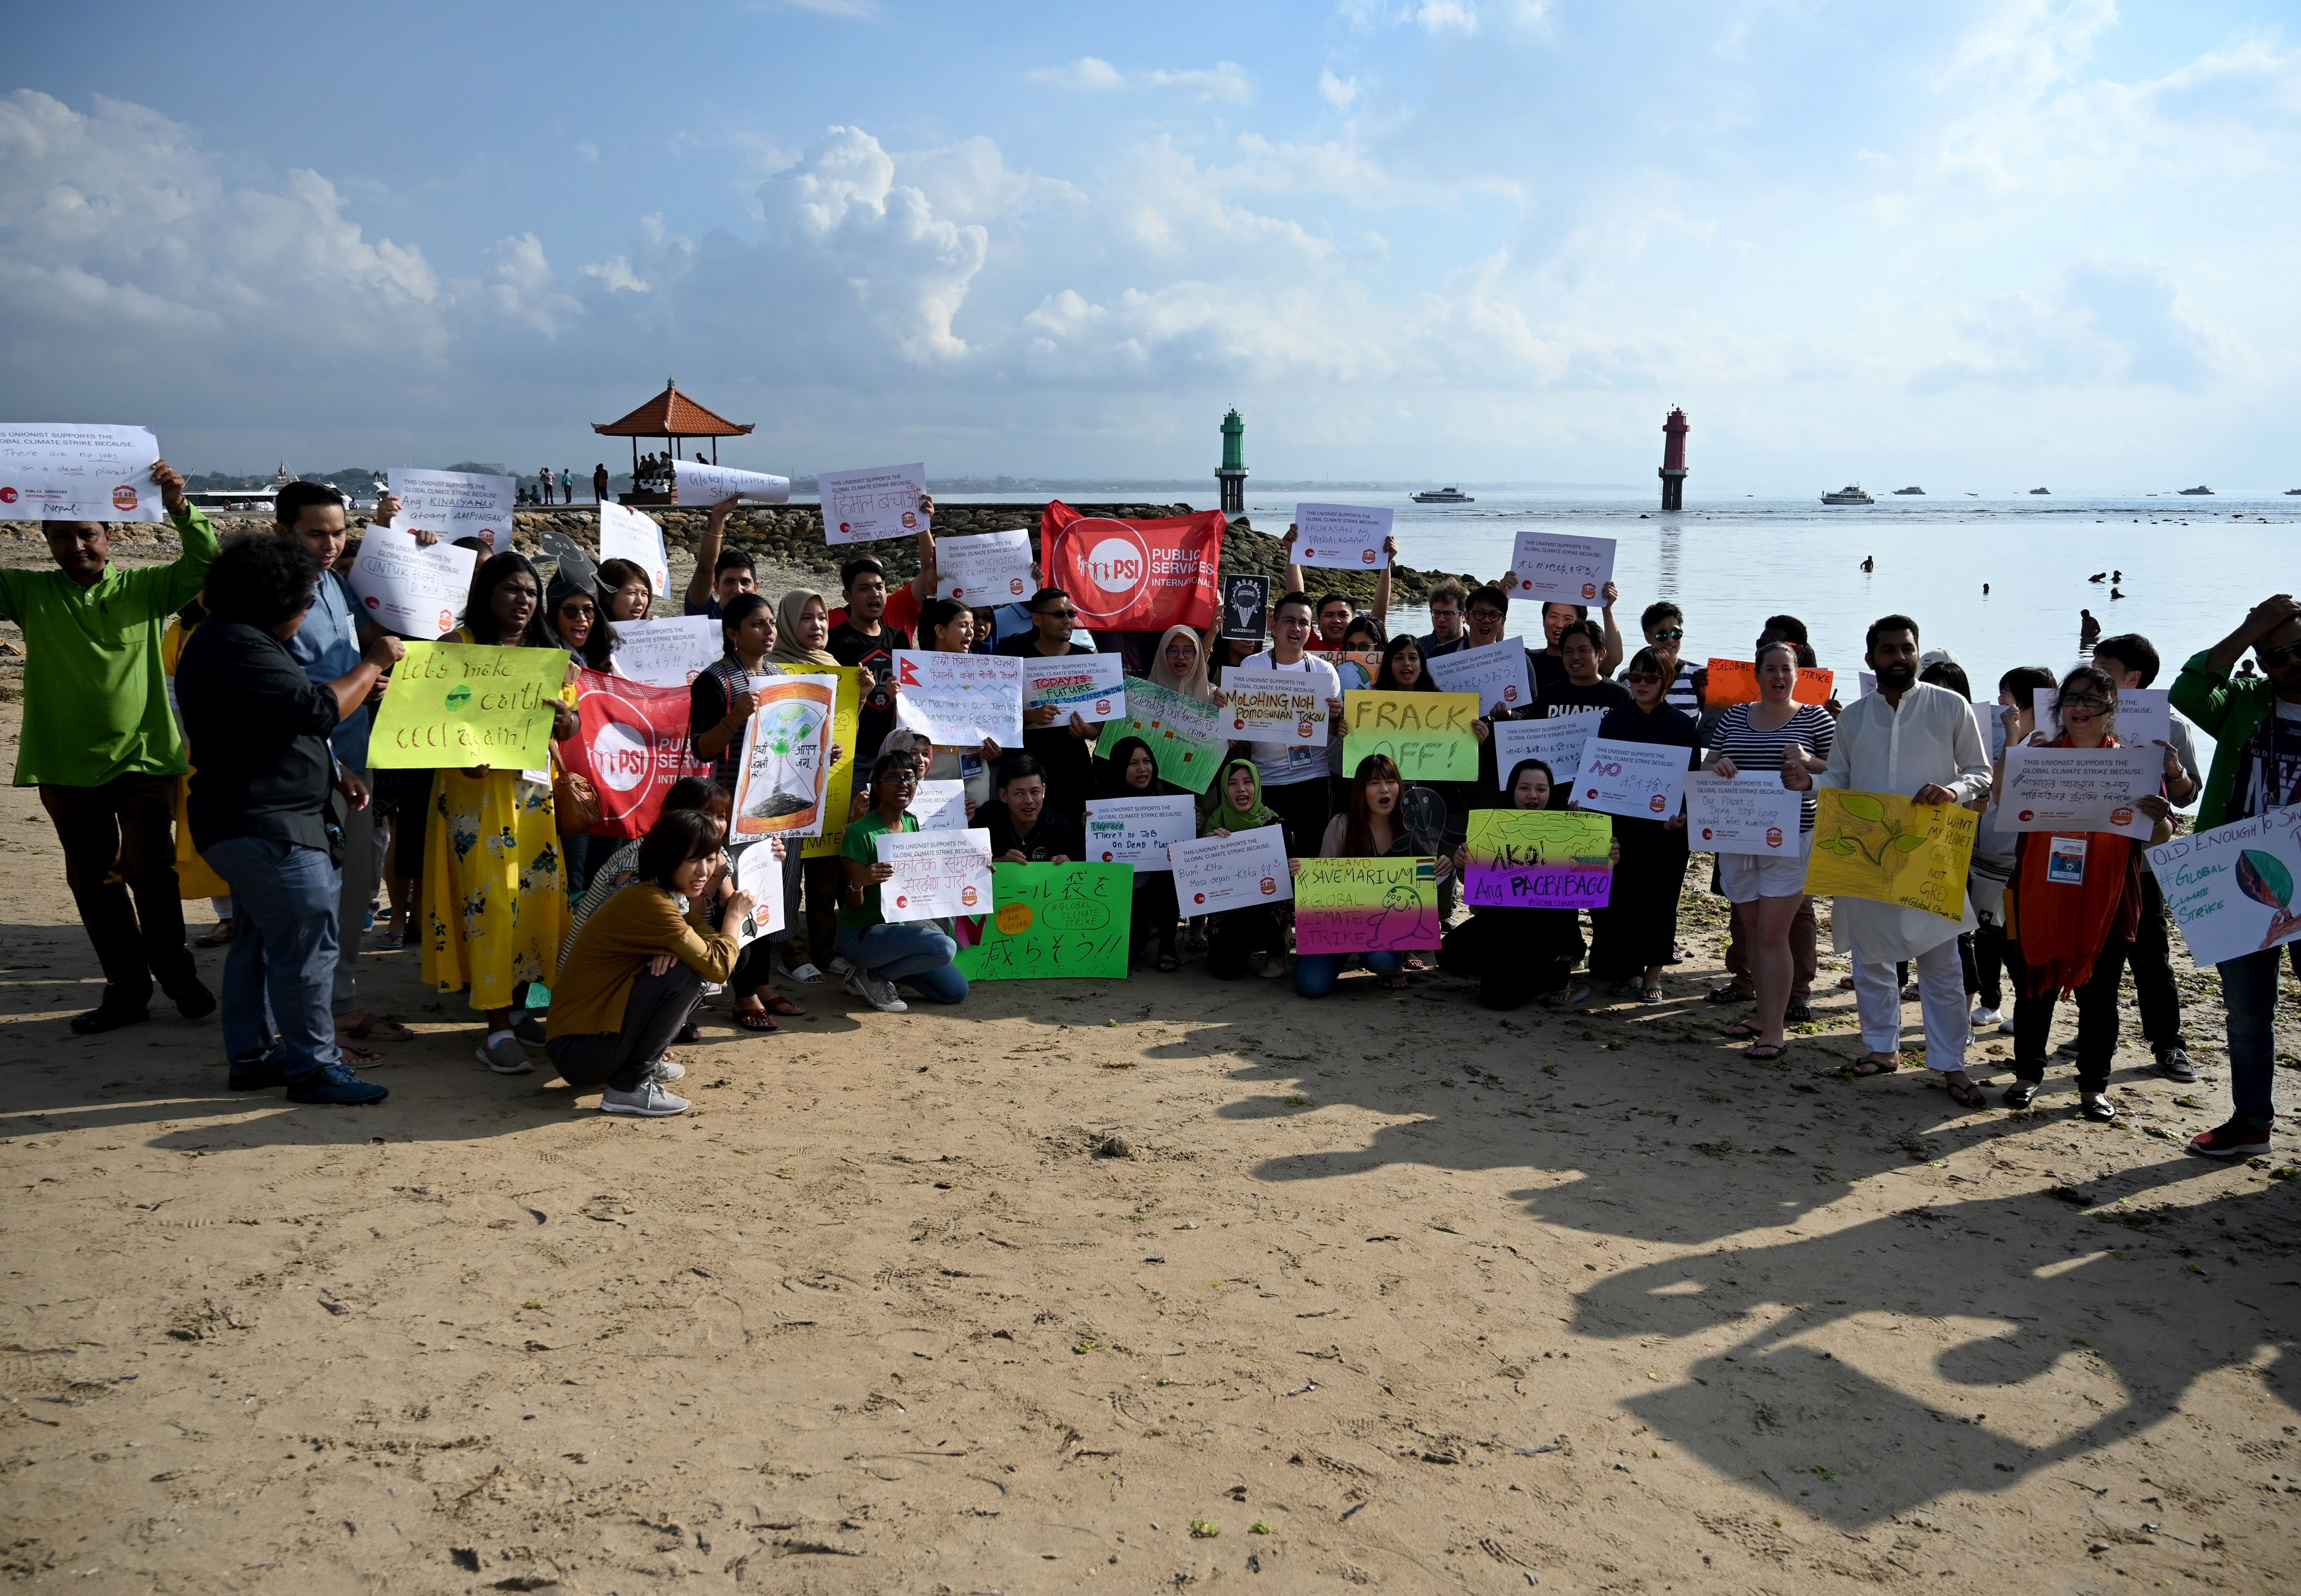 People hold a rally as part of a global climate change campaign at Sanur Beach in Bali, Indonesia.